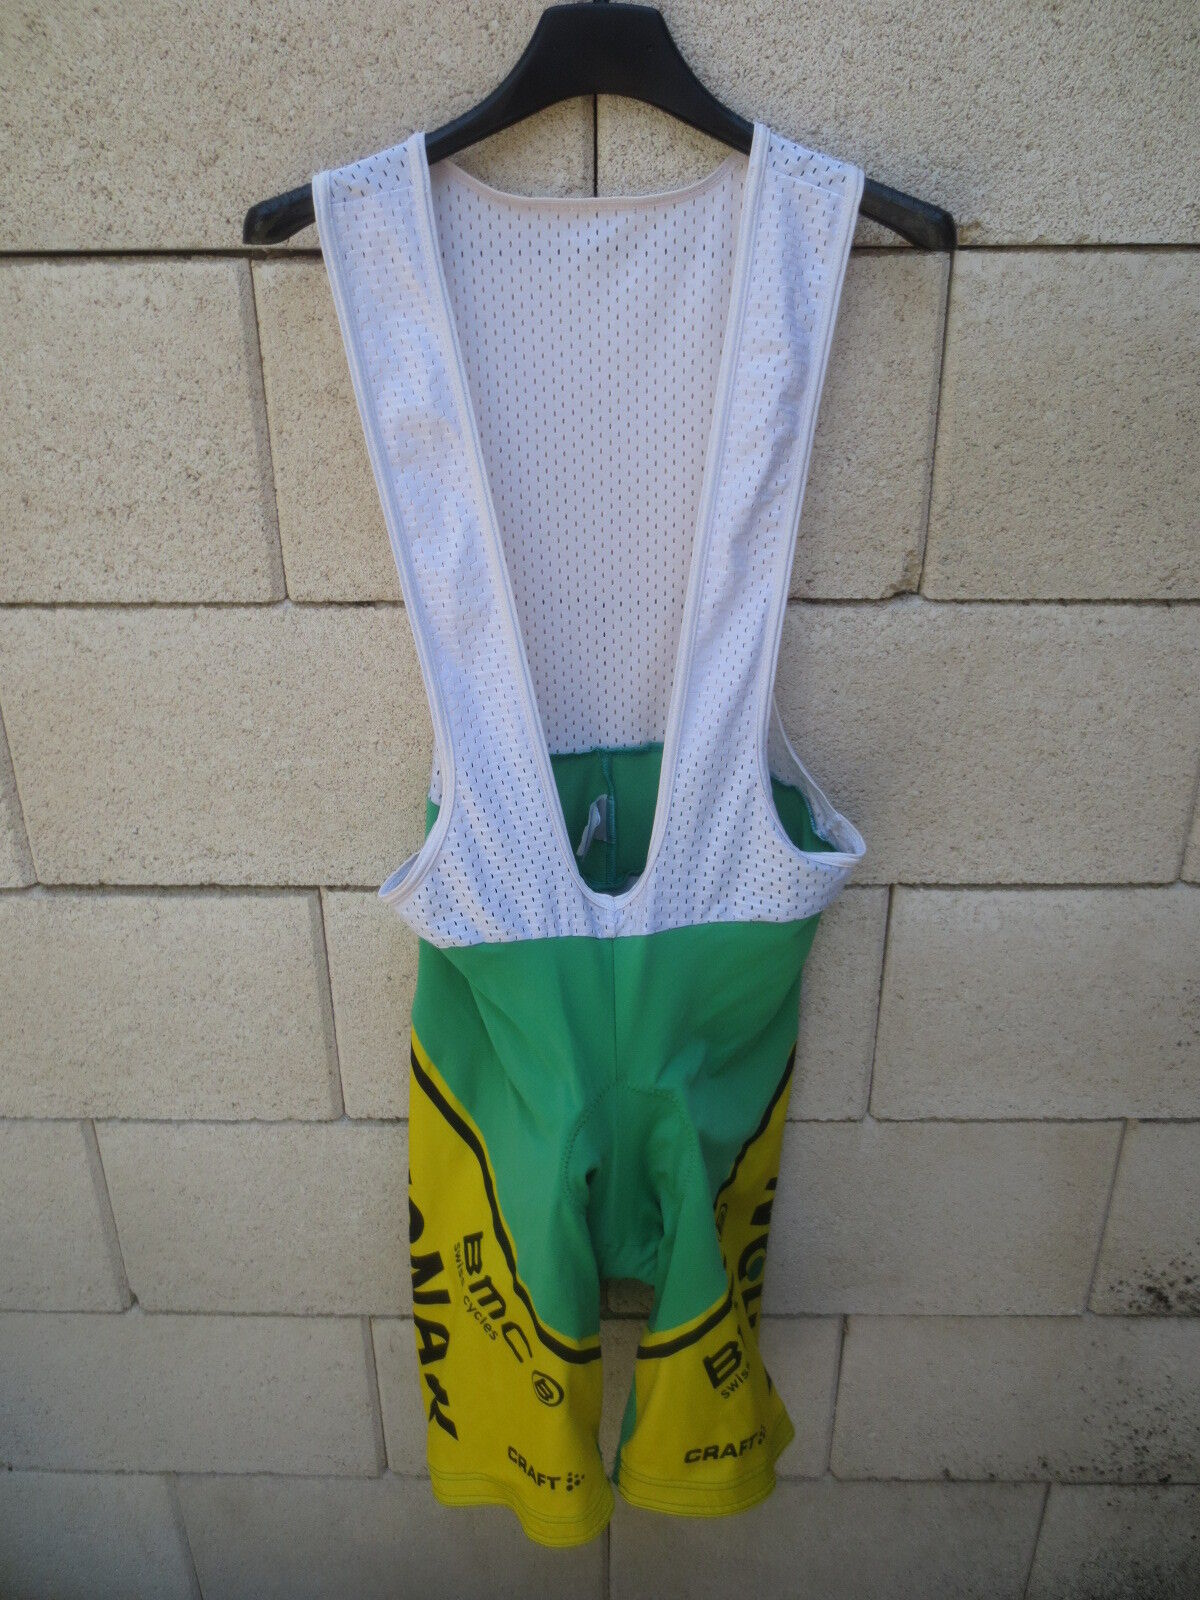 Combi bib shorts cycling phonak  tour france 2006 floyd landis elmiger craft xxl  most preferential